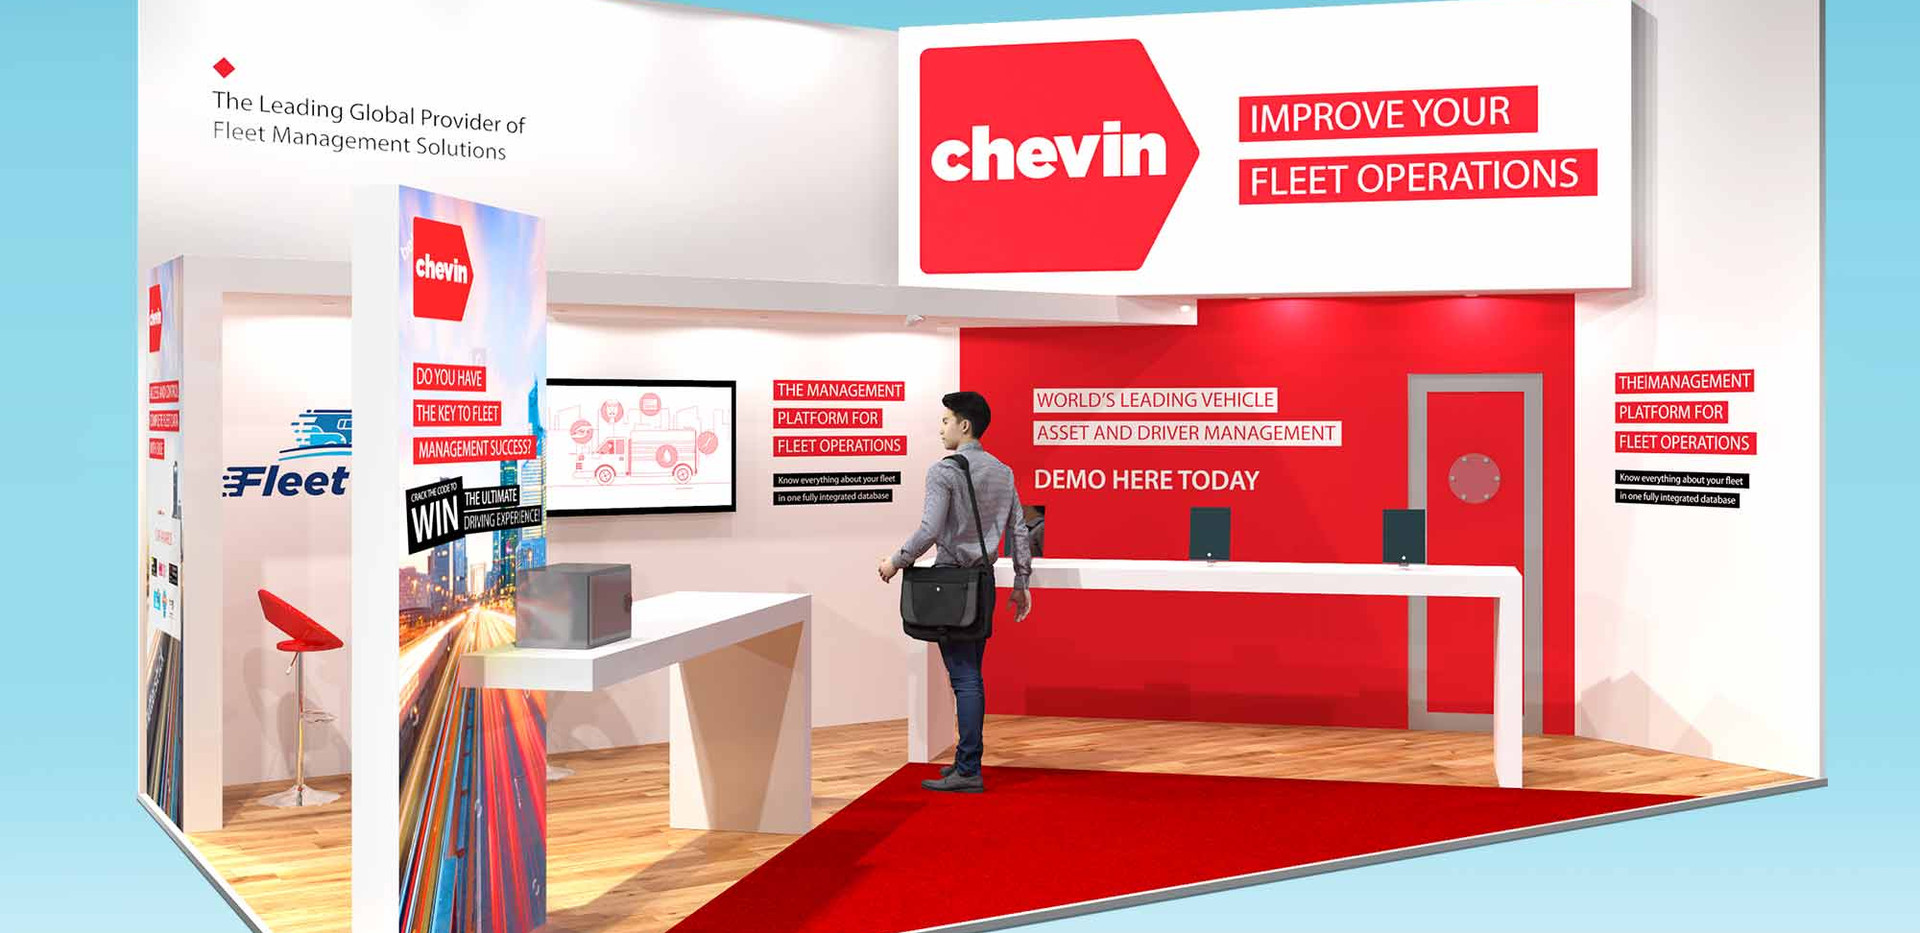 Architectural Exhibition Stand Design for Chevin CV Show